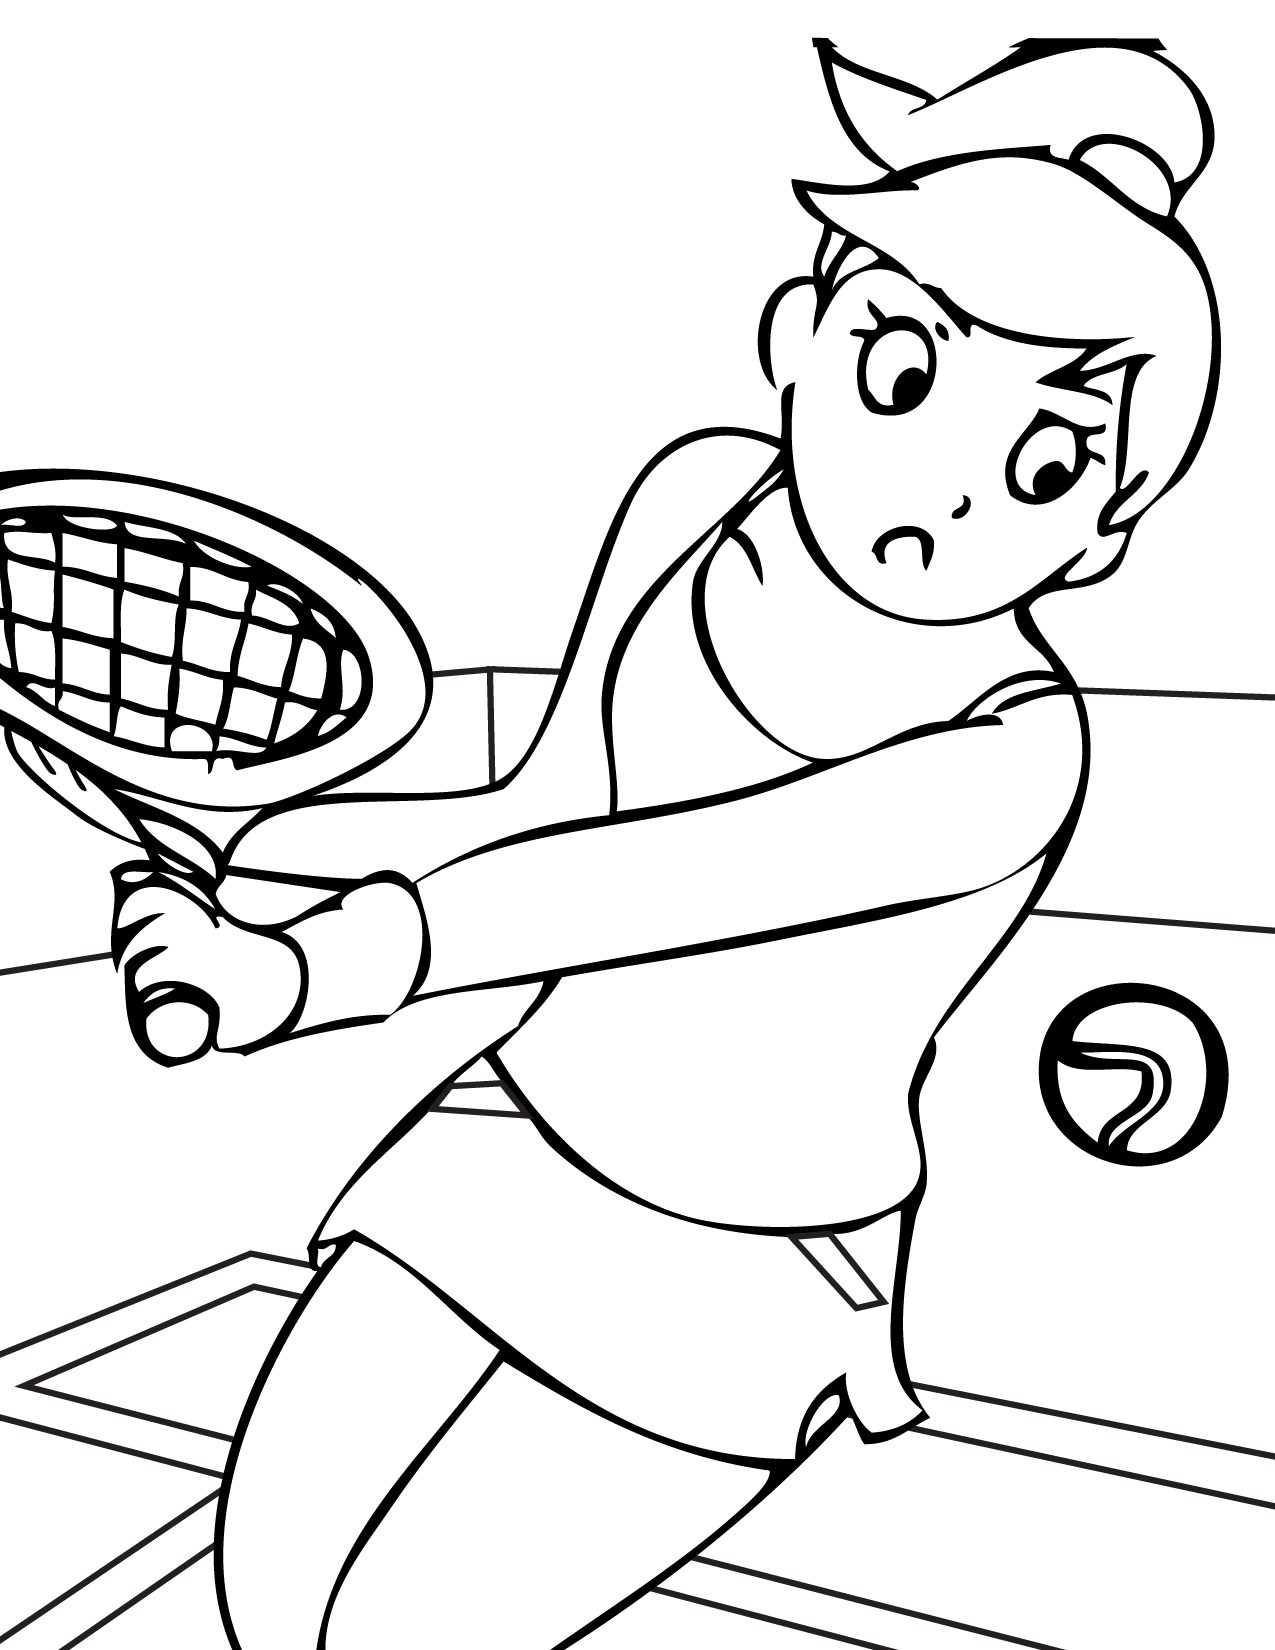 boy sports coloring pages - photo#26